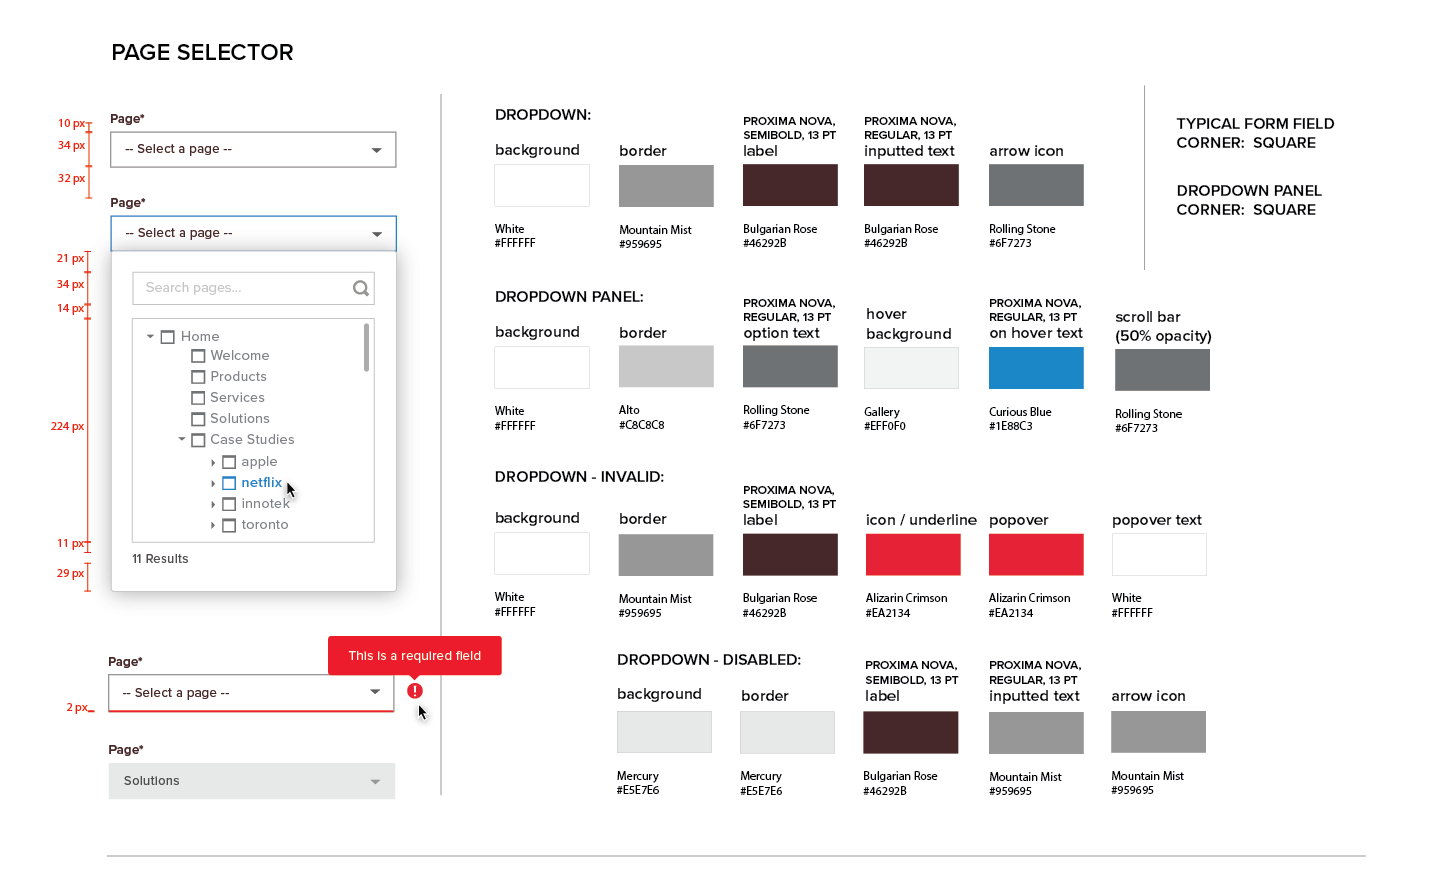 Persona Bar Style Guide - Page Selector